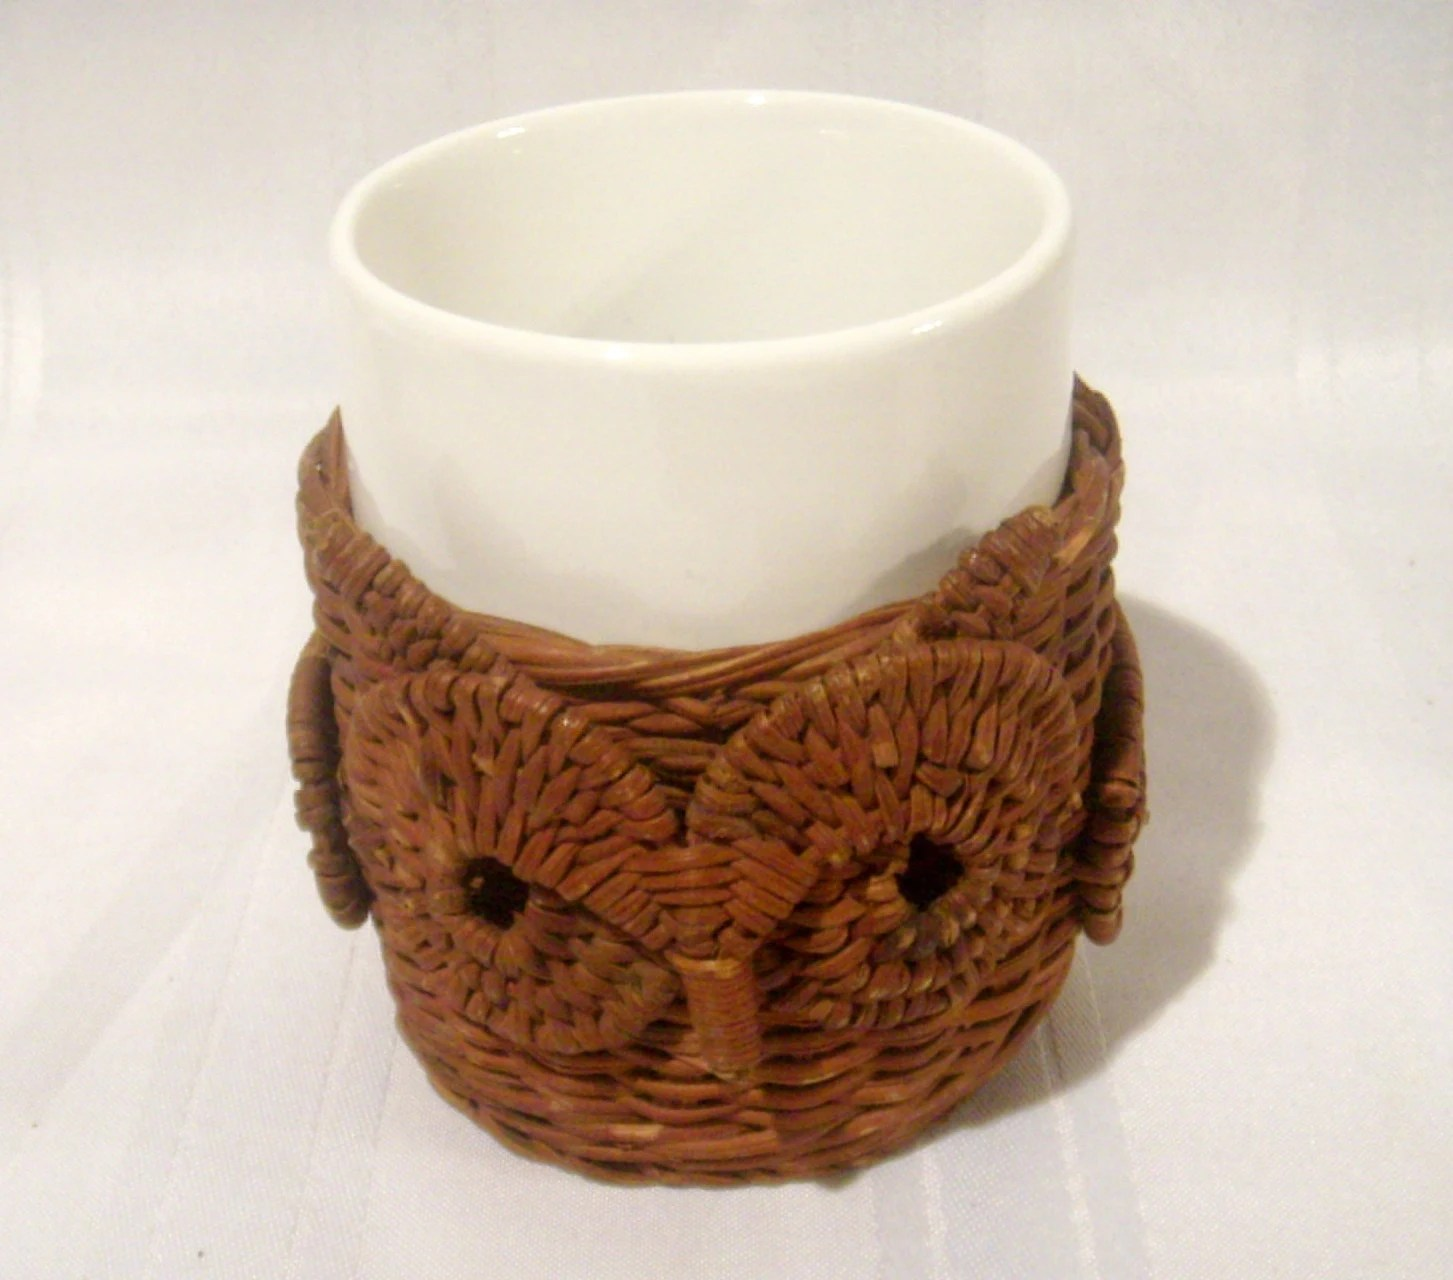 Owl Ceramic Mug Avon Owl Mug 1980s Wicker And Ceramic 2 Piece Mug Wicker